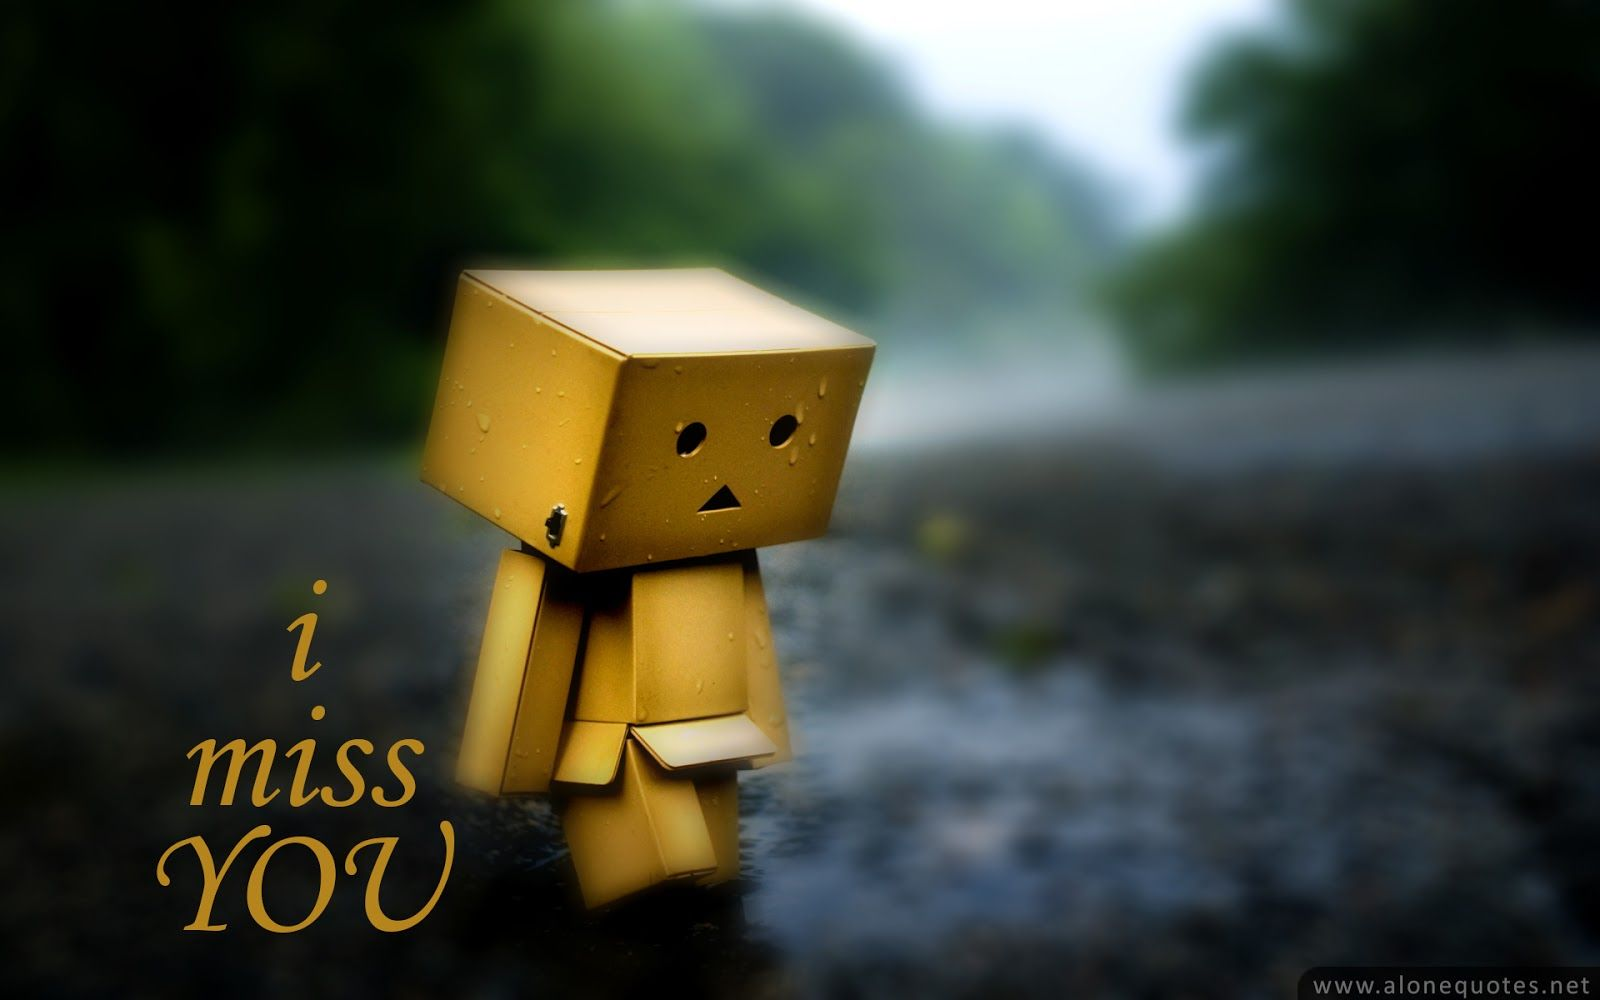 I Miss You Sad Alone Boy Walking On Tha Rain Vishal Bishnoi